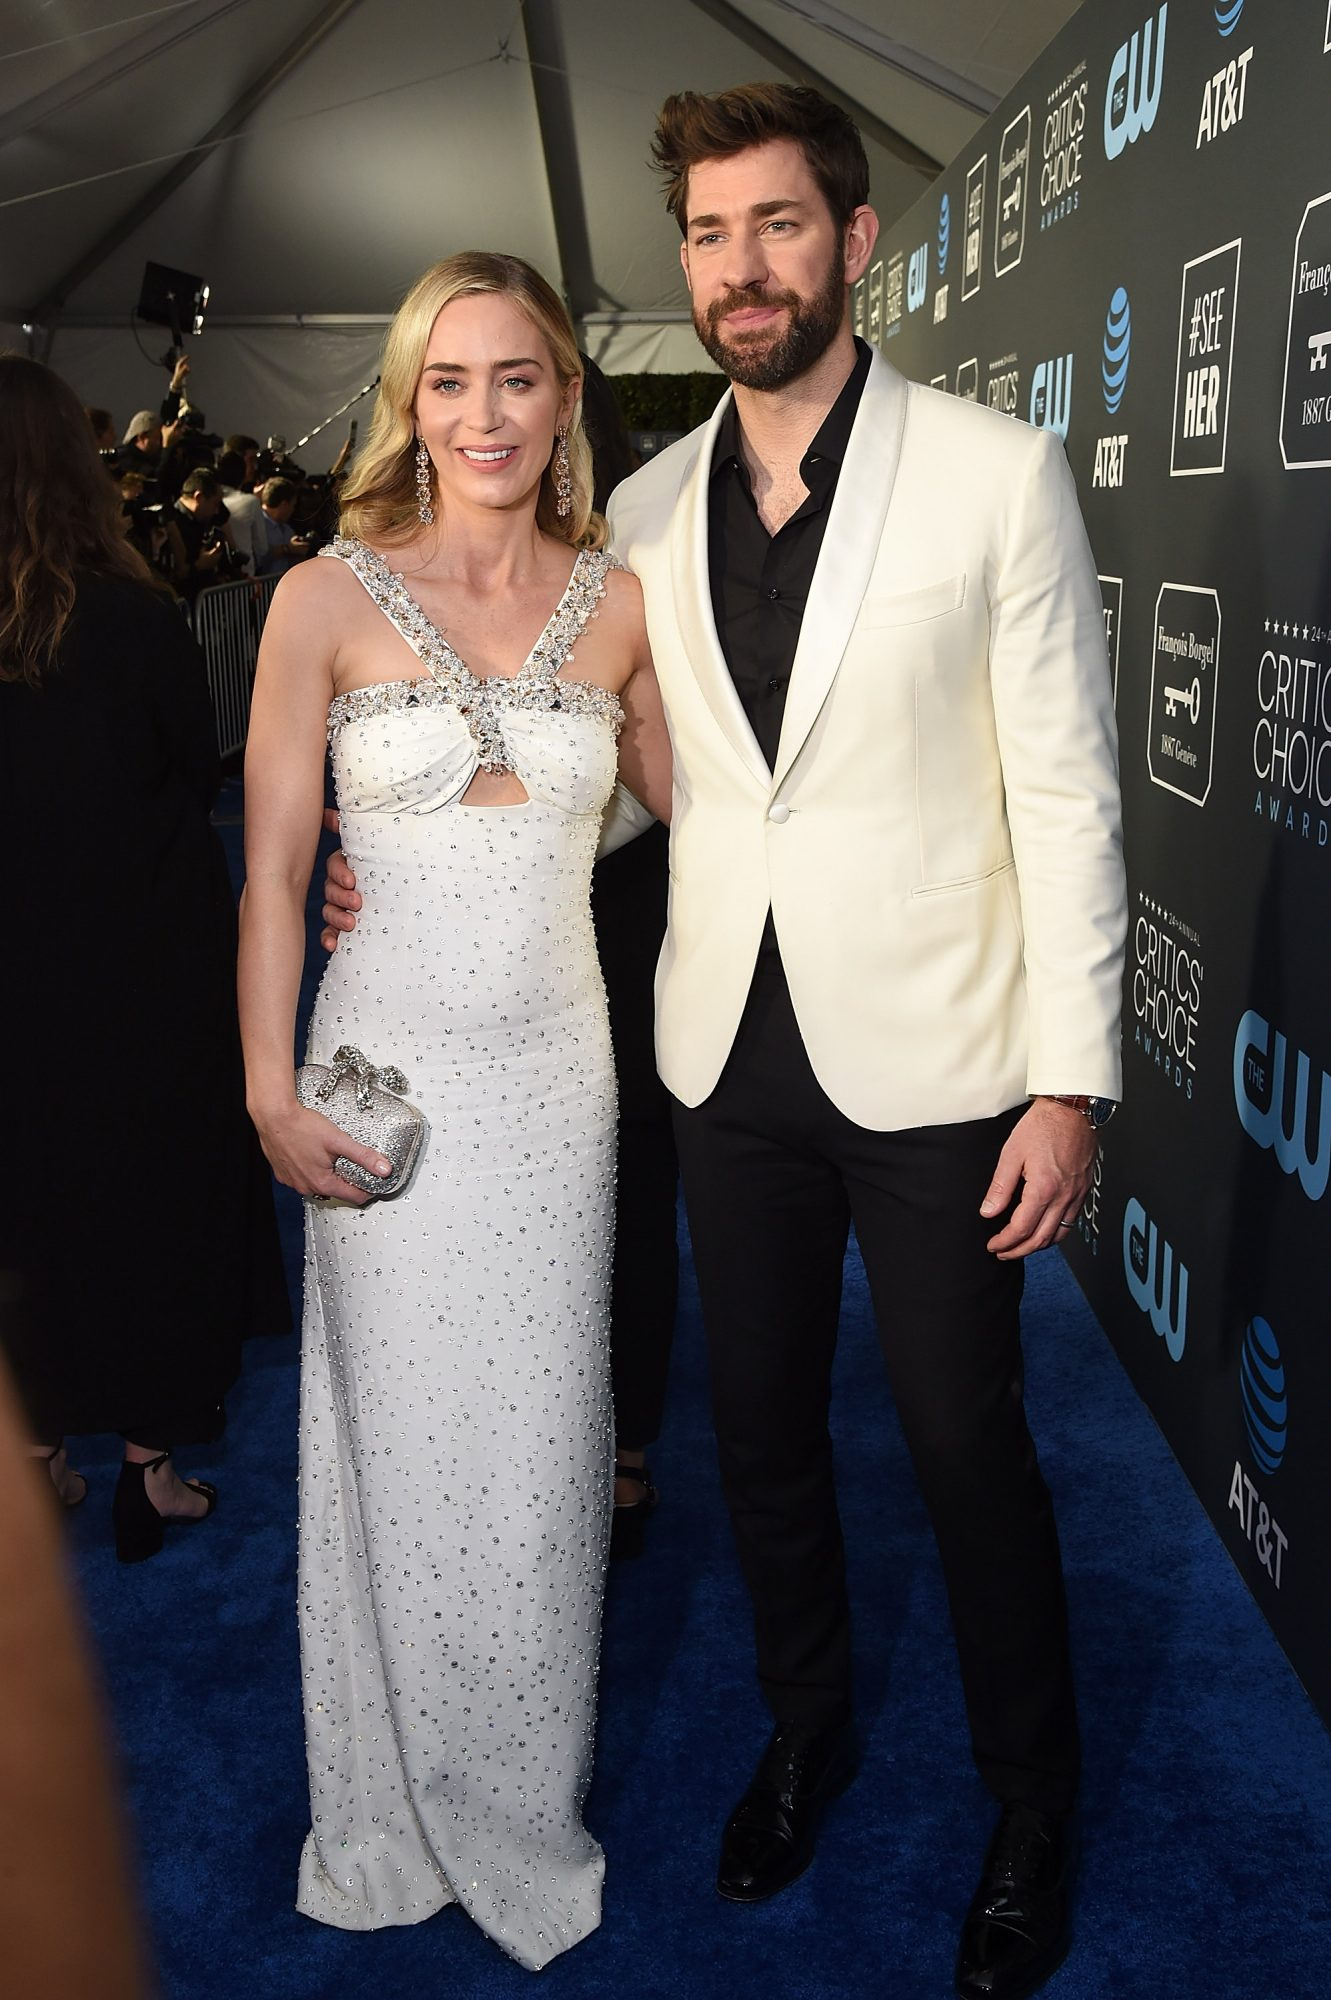 The 24th Annual Critics' Choice Awards